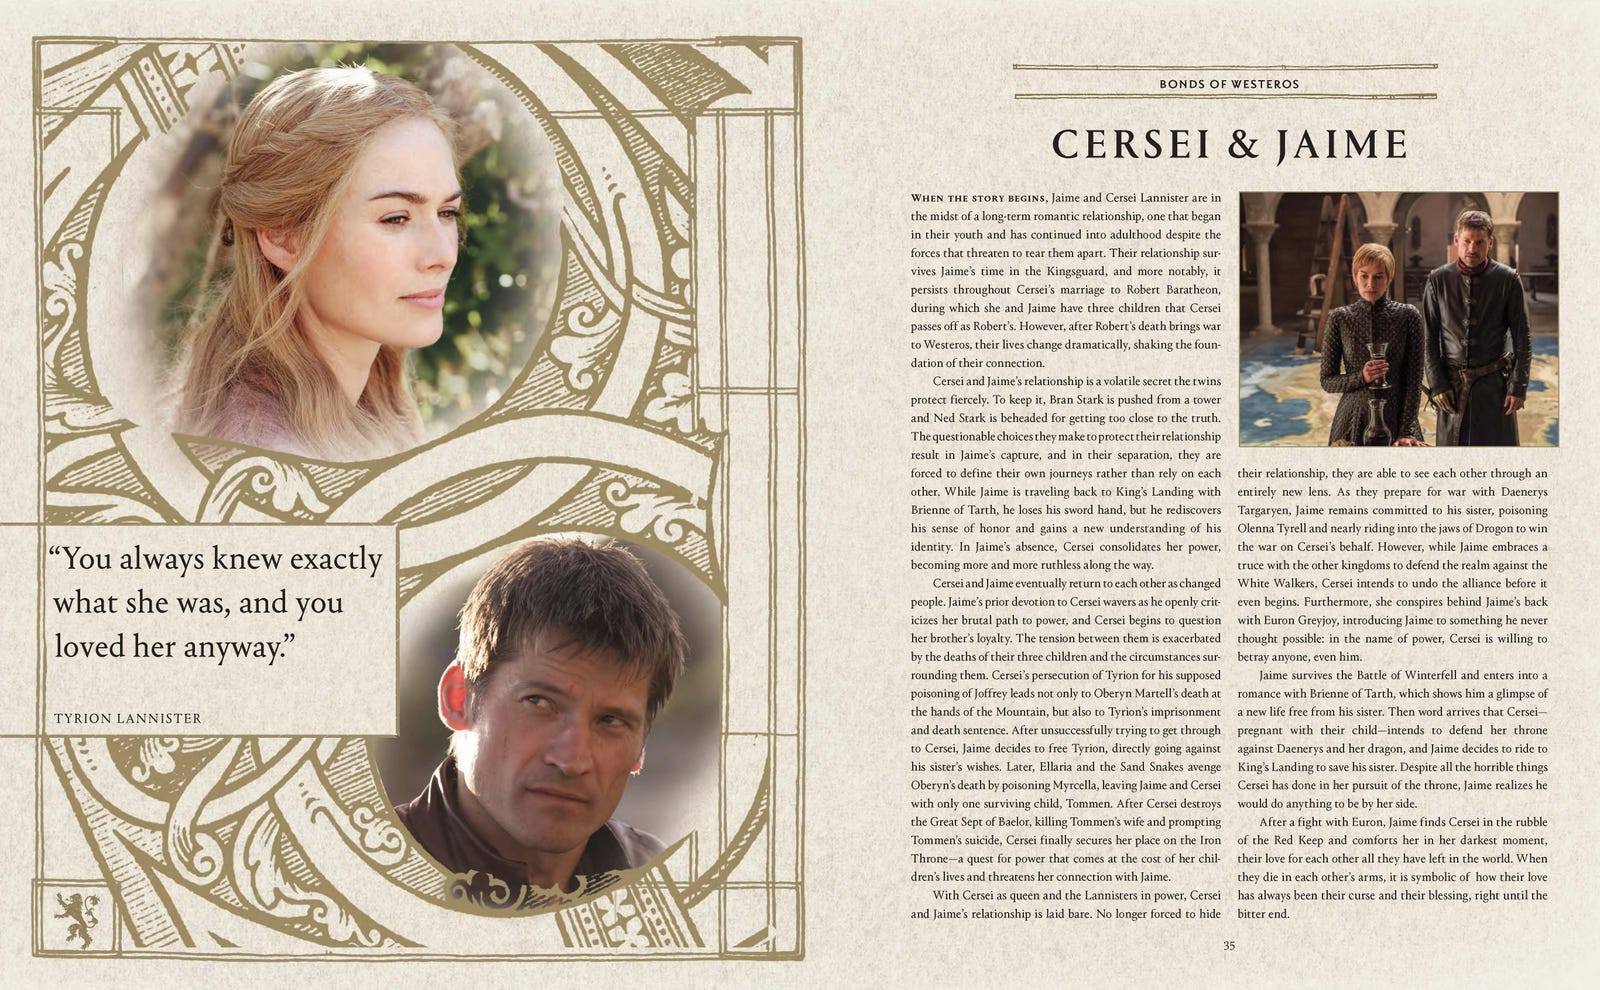 Take a look at just some of the essays and infographics found inside A Guide to Westeros and Beyond.